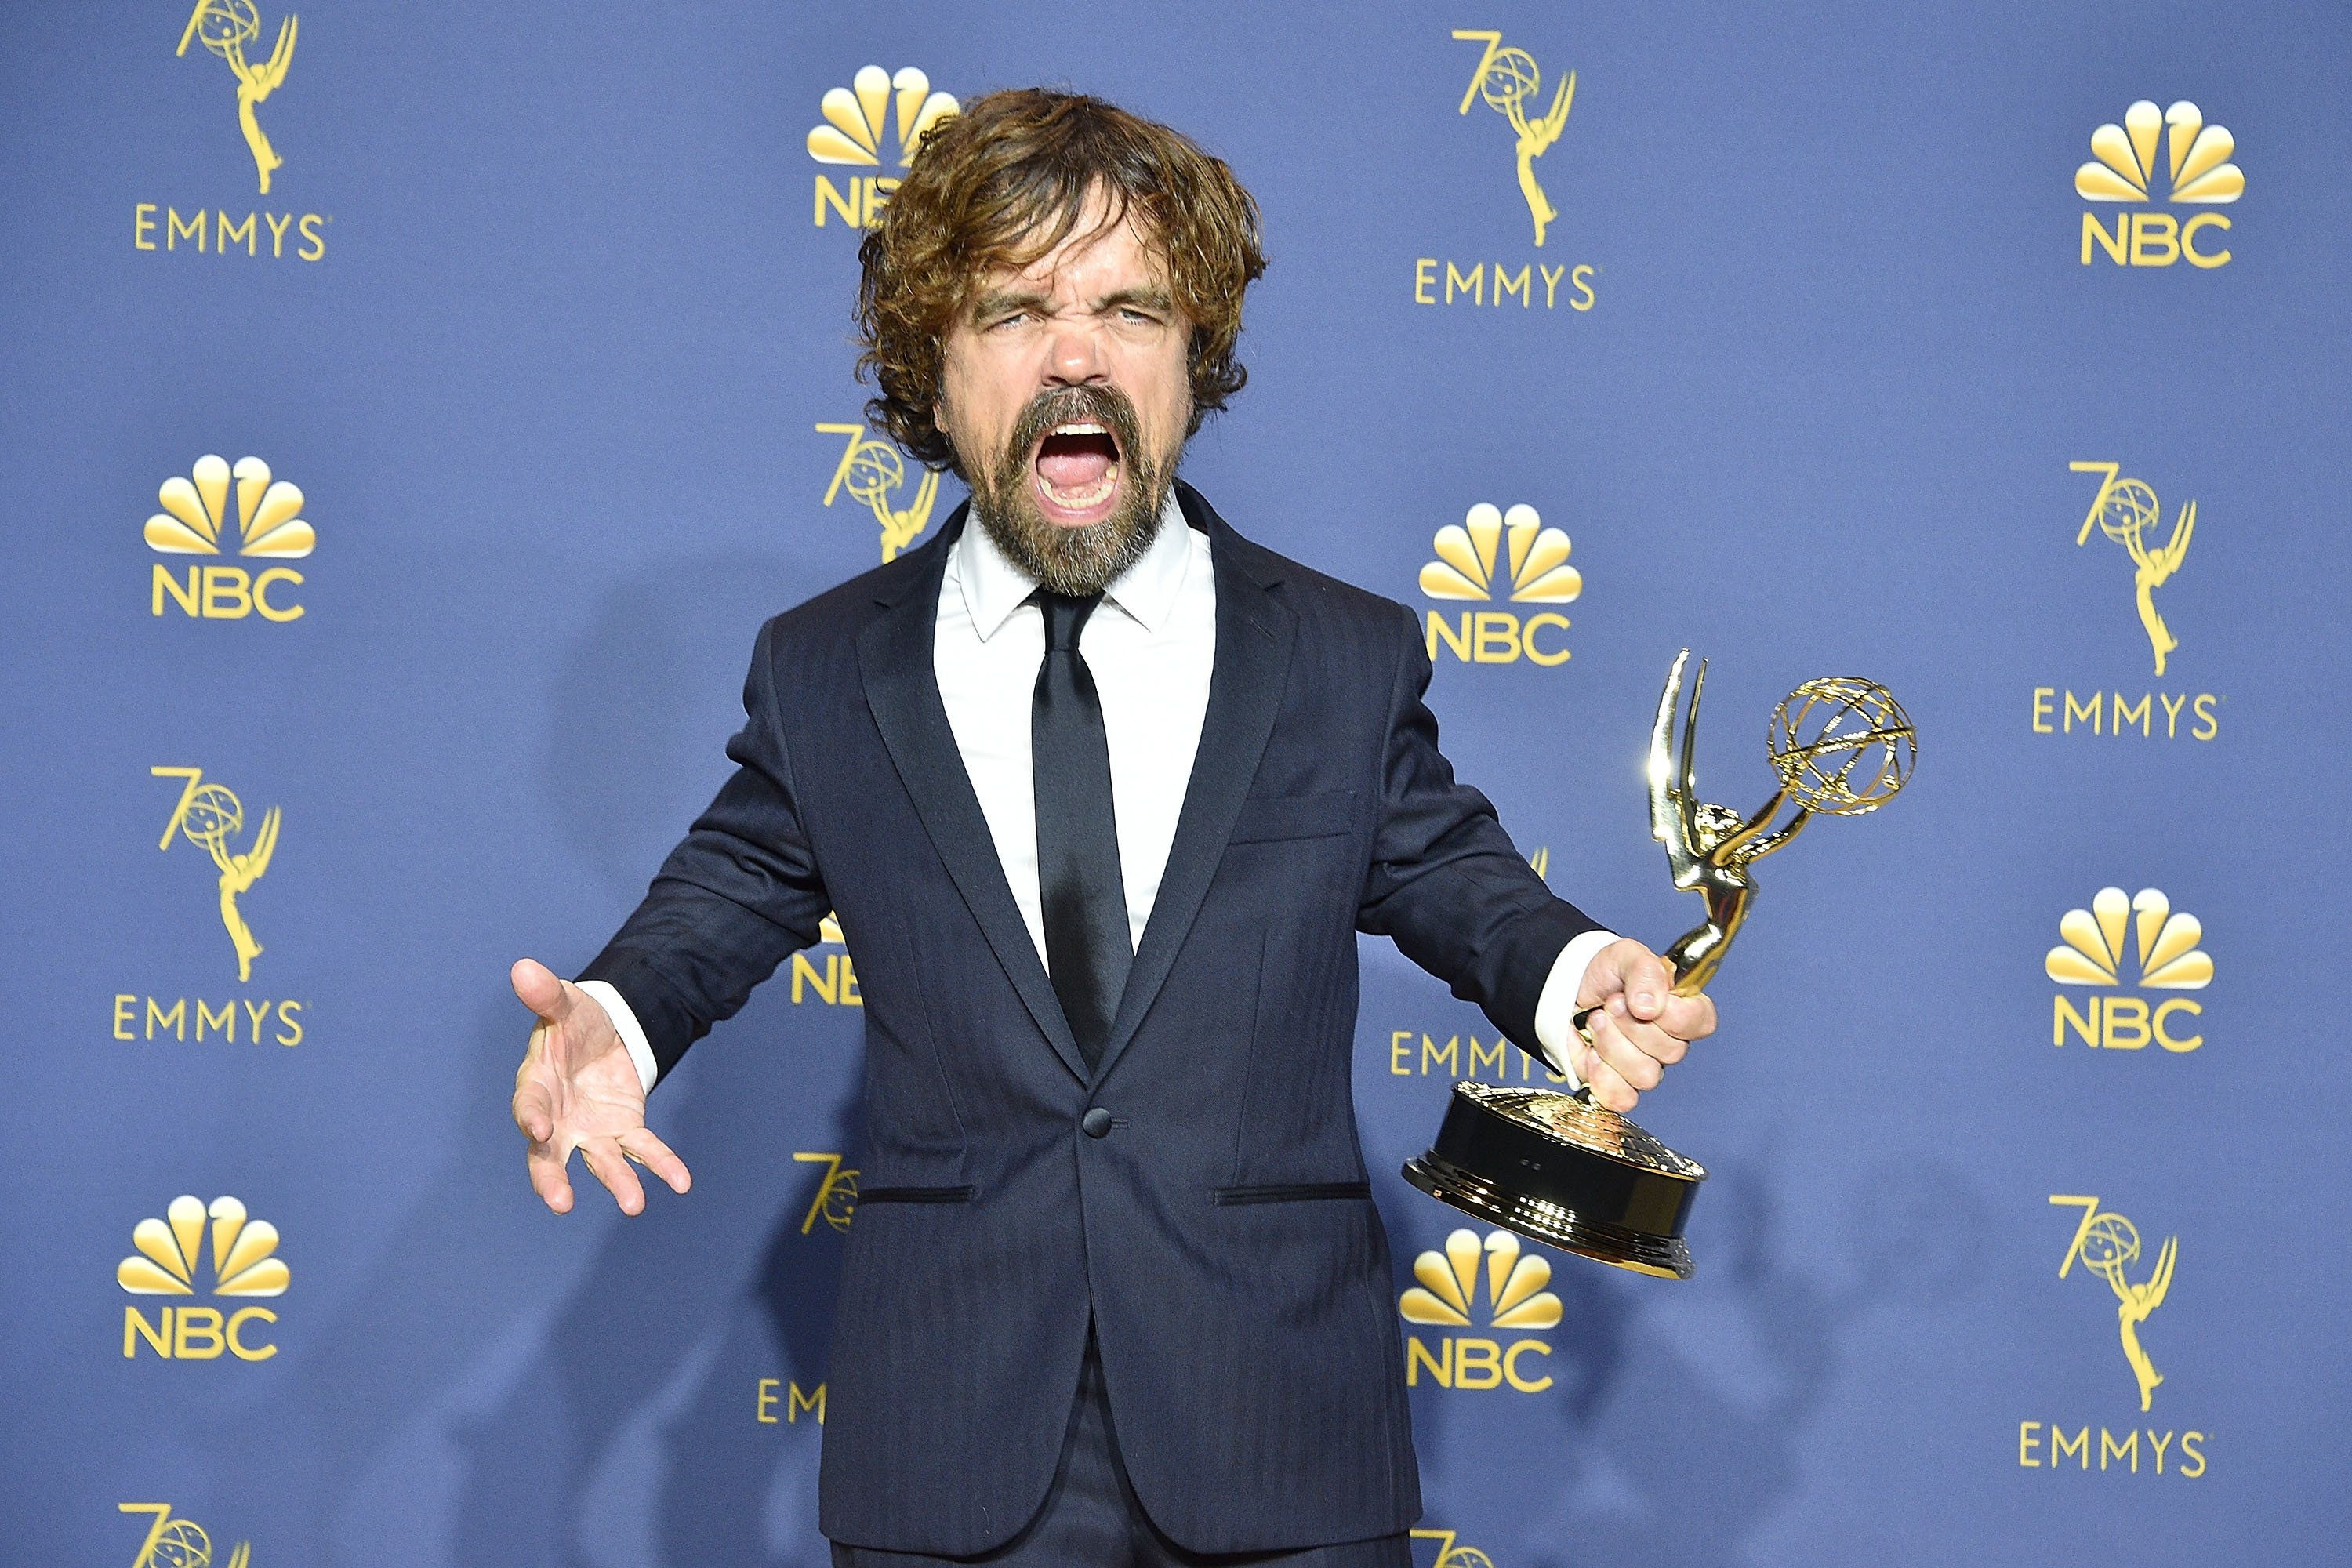 LOS ANGELES, CA - SEPTEMBER 17:  Peter Dinklage attends the 70th Emmy Awards - Press Room at Microsoft Theater on September 17, 2018 in Los Angeles, California.  (Photo by David Crotty/Patrick McMullan via Getty Images)